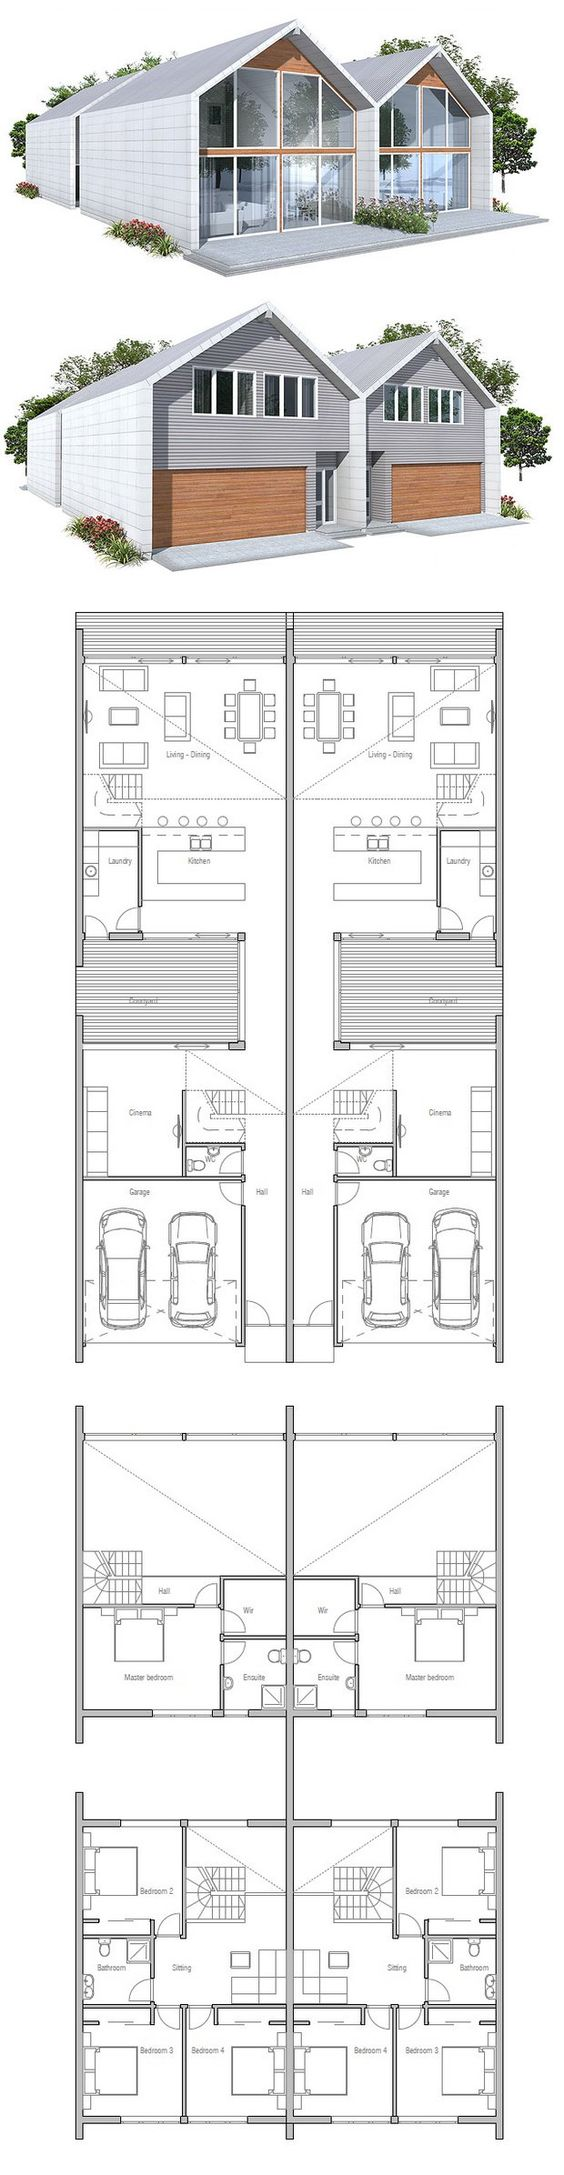 Duplex house plan to narrow lot 2 bed plans for Narrow lot duplex